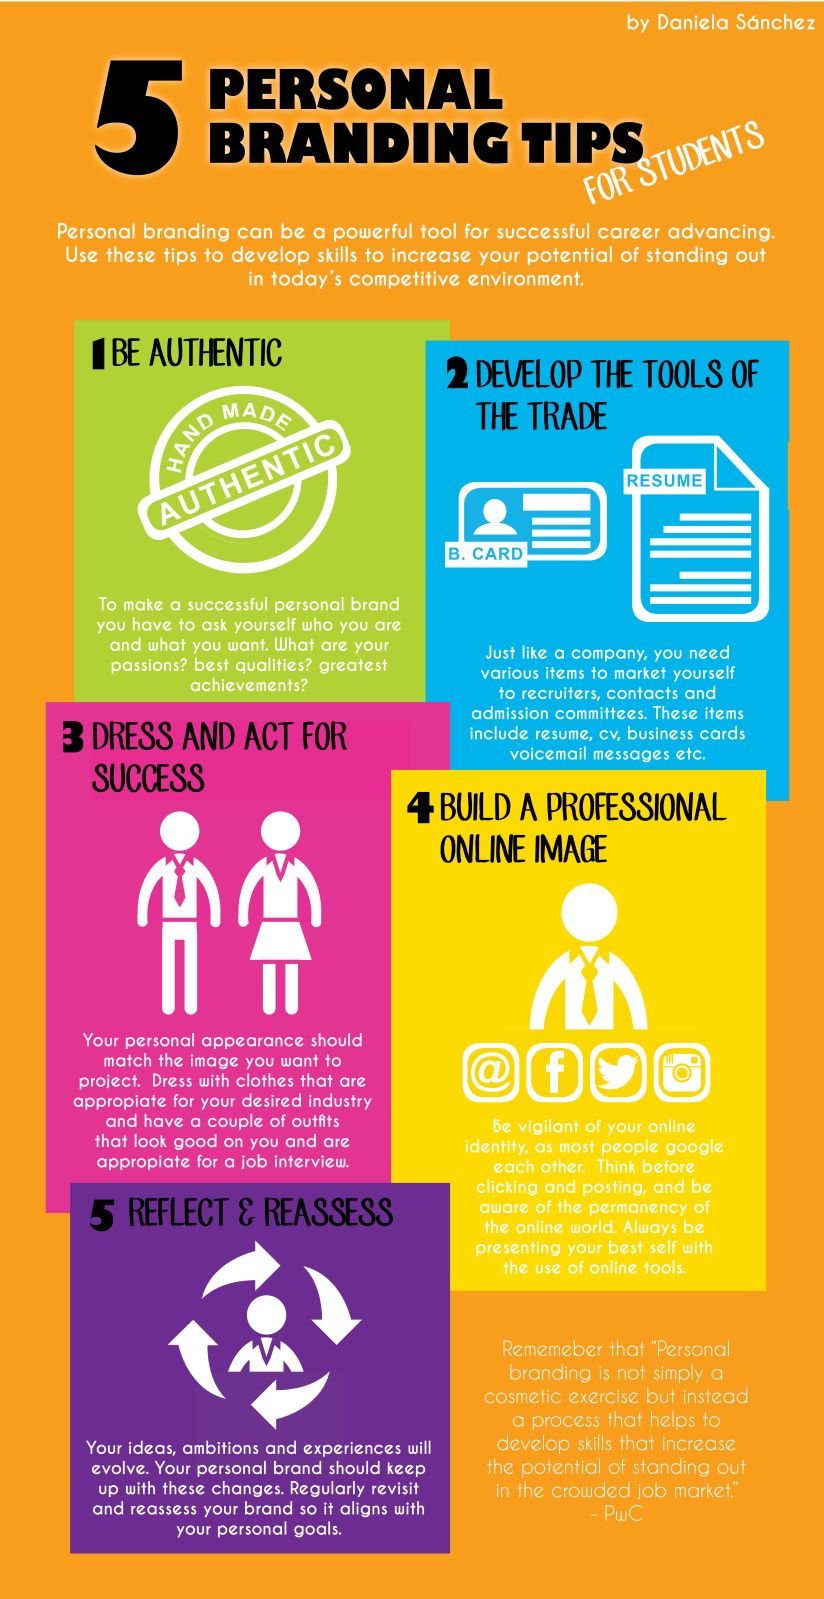 5 Personal Branding Tips For Students This Infographic Created